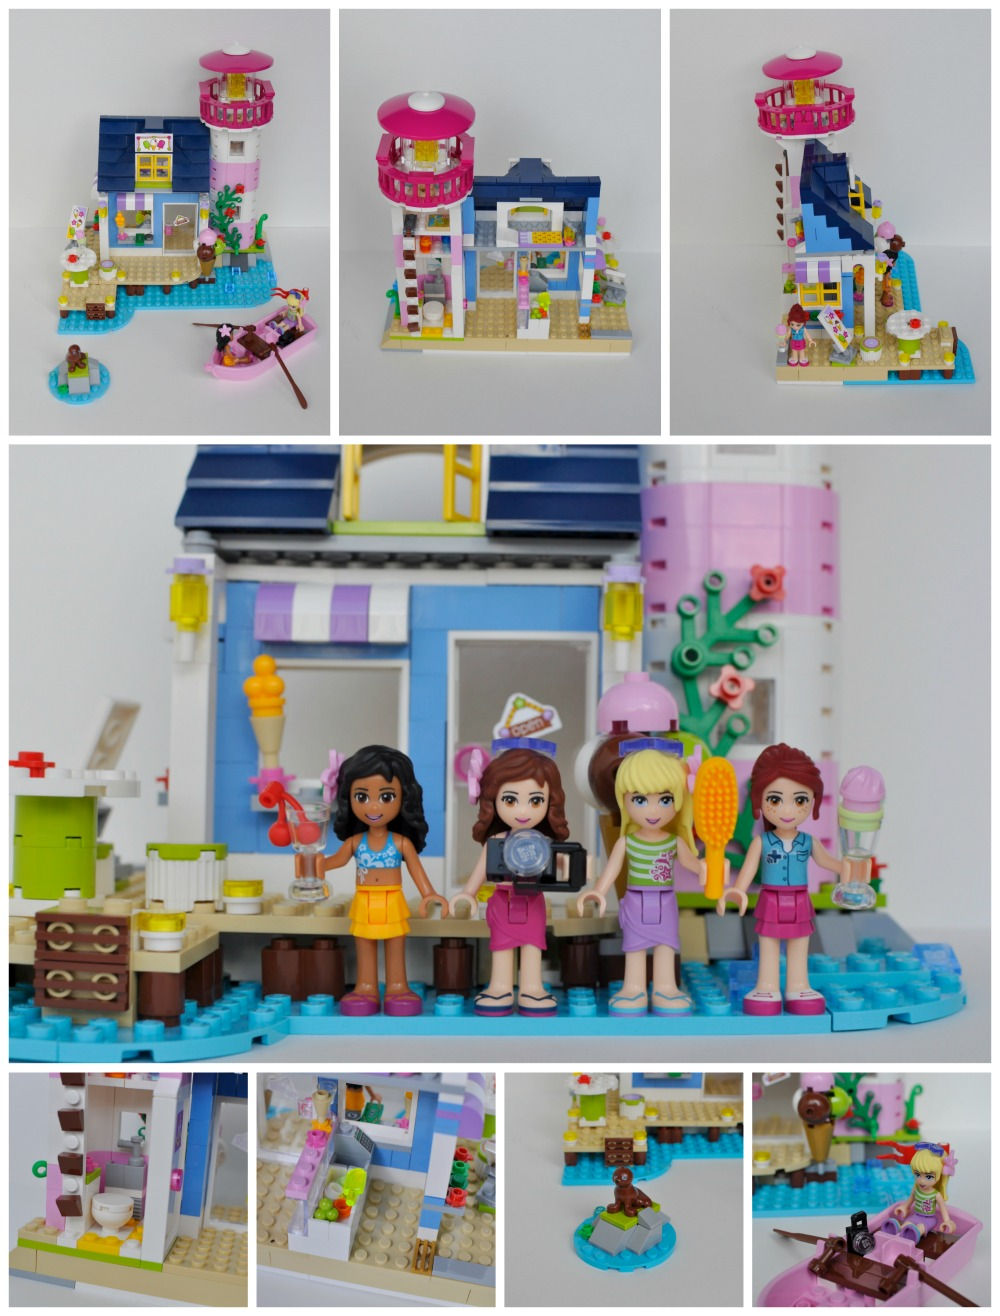 Lego Friends Heartlake Lighthouse Review (41094)